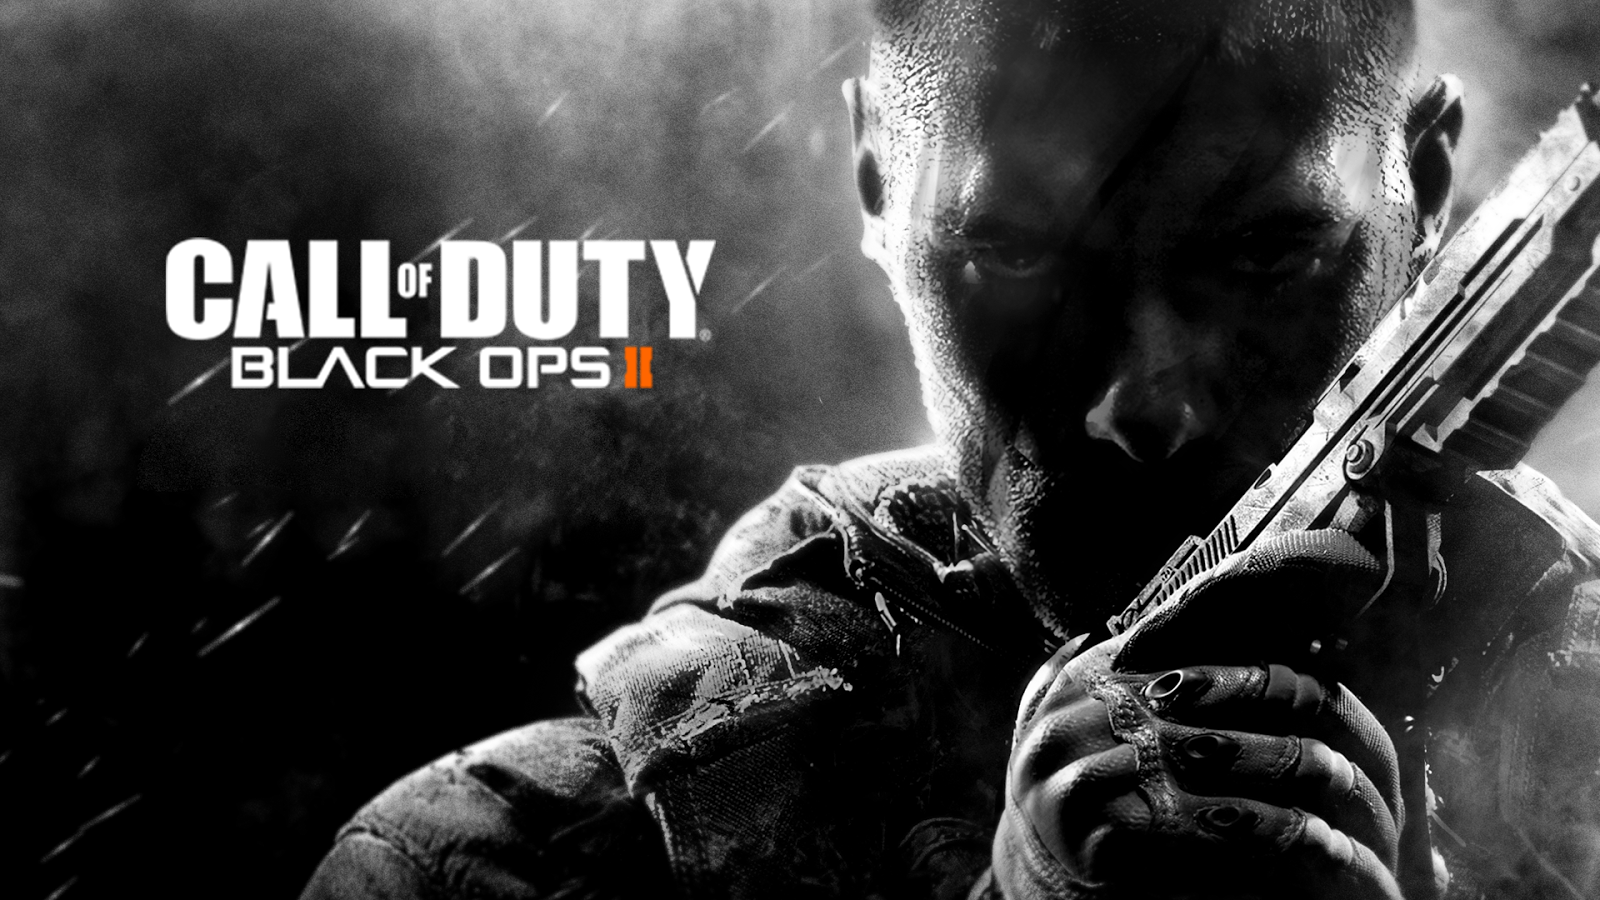 matchmaking call of duty black ops 2 Call of duty black ops 3 details the new parkour mode called free run  call of duty black ops 3 news: free run mode, better matchmaking, rewards, and more.